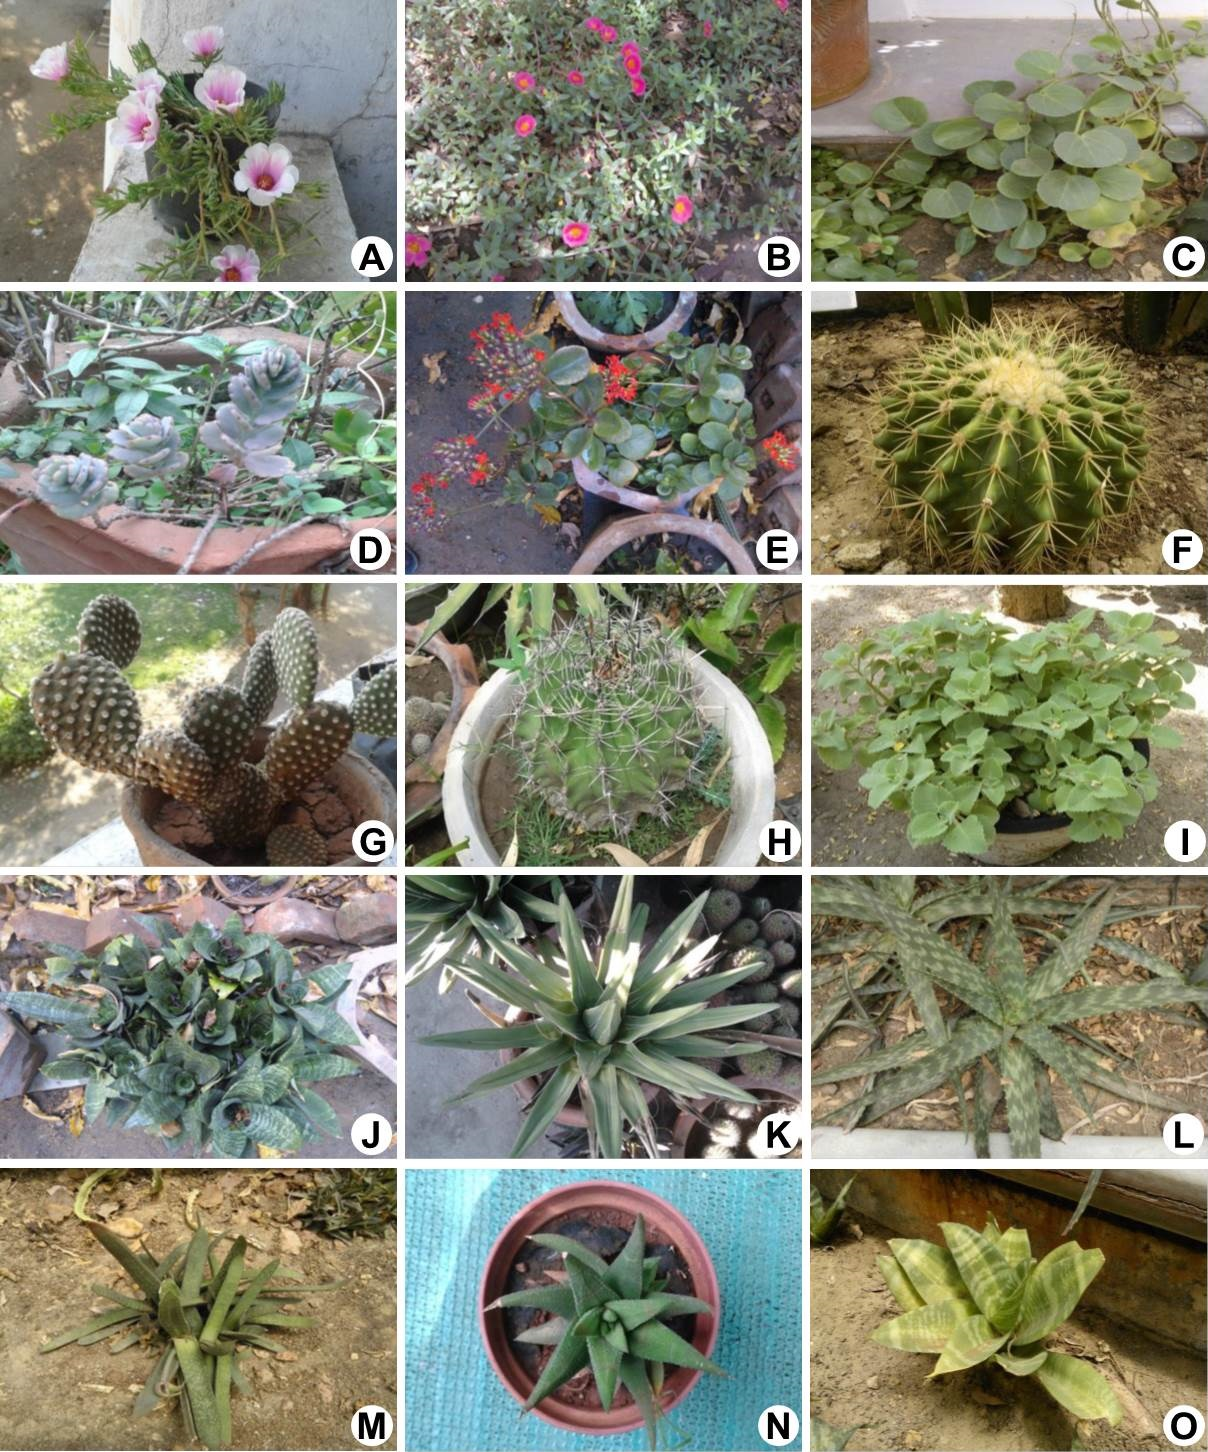 Photographs of some succulents: A, Portulaca pilosa Linn. Spp. Grandiflora(Hook.) Gesink; B, Portulaca pilosa L.; C, Cissus rotundifolia Vahl; D, Bryophyllum fedtschenkoi (Raym.-Hamet & H.Perrier) Lauz.-March; E, Kalanchoe blossfeldiana Poelln; F, Echinocactus grusonii Hildm; G, Opuntia microdasys (Lehm.) Pfeiff.; H, Ferocactus peninsulae (A.A.Weber) Britton & Rose; I, Plectranthus amboinicus (Lour.) Spreng; J, Aechmea fasciata (Lindl.) Baker.; K, Agave victoriae-reginae T.Moore Gard.; L, Aloe maculata All.